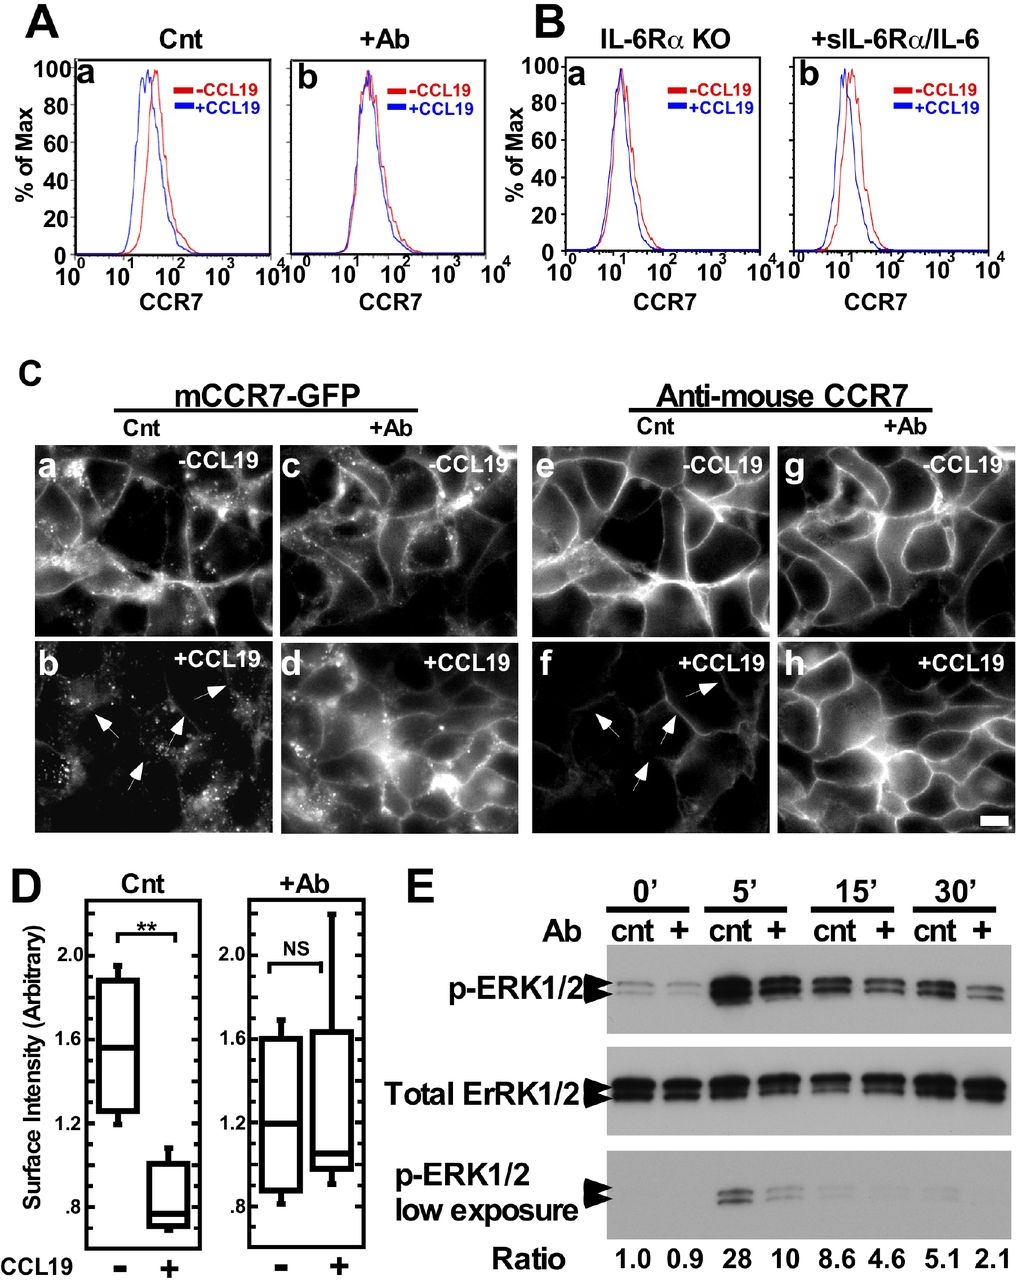 IL-6Rα signaling is critical for CCR7 internalization and CCL19-induced ERK1/2 phosphorylation. A , Effects of the blockage of IL-6 signaling on CCR7 internalization. WT BMDCs were stimulated with CCL19 for 5 min in the presence of either control (a) or neutralizing antibody (b), and then surface CCR7 expression was determined by flow cytometry. Surface expression of CCR7 was examined with CD86 + BMDCs before (-CCL19) and after CCL19 addition (+CCL19). Note that CCR7 internalization was blocked in the absence of a neutralizing antibody to IL-6Rα. B , Effects of IL-6 signaling on CCR7 internalization of IL-6Rα KO BMDCs. IL-6Rα KO BMDCs were stimulated with CCL19 in the absence (a) or presence of sIL-6Rα (soluble IL-6Rα) and IL-6 (b). Note that IL-6Rα KO BMDCs showed impaired CCR7 internalization (a), which was rescued by the addition of sIL-6Rα and IL-6 (b). C , Inhibition of CCR7 internalization by the blockage of IL-6 signaling in HEK293T epithelial cells. HEK293T cells stably expressing mouse CCR7-GFP were stimulated with CCL19 in the presence of either control or neutralizing antibody against IL-6Rα. a-d, fluorescence images of CCR7-GFP in control cells (a b) or IL-6Rα neutralizing antibody-treated cells (c d) before (a c) or after addition of CCL19 (b d). The same cells were counter stained with an antibody specific to mouse CCR7 to detect only surface CCR7 (e-h) in control (e f) or IL-6Rα neutralizing antibody-treated cells (g h) before (e g) or after (f h) addition of CCL19. D , Quantitative measurements of surface CCR7 immunofluorescence (panels e-h of C) at cell-to-cell contacts. In contrast to the control, the addition of a neutralizing antibody against IL-6Rα blocked internalization of CCR7. E , Effects of the blockage of IL-6 signaling on CCL19-induced ERK1/2 phosphorylation of WT BMDCs. WT BMDCs were stimulated with CCL19 in the presence of a control or neutralizing antibody, then ERK1/2 phosphorylation levels were determined at 0, 5, 15 and 30min after 